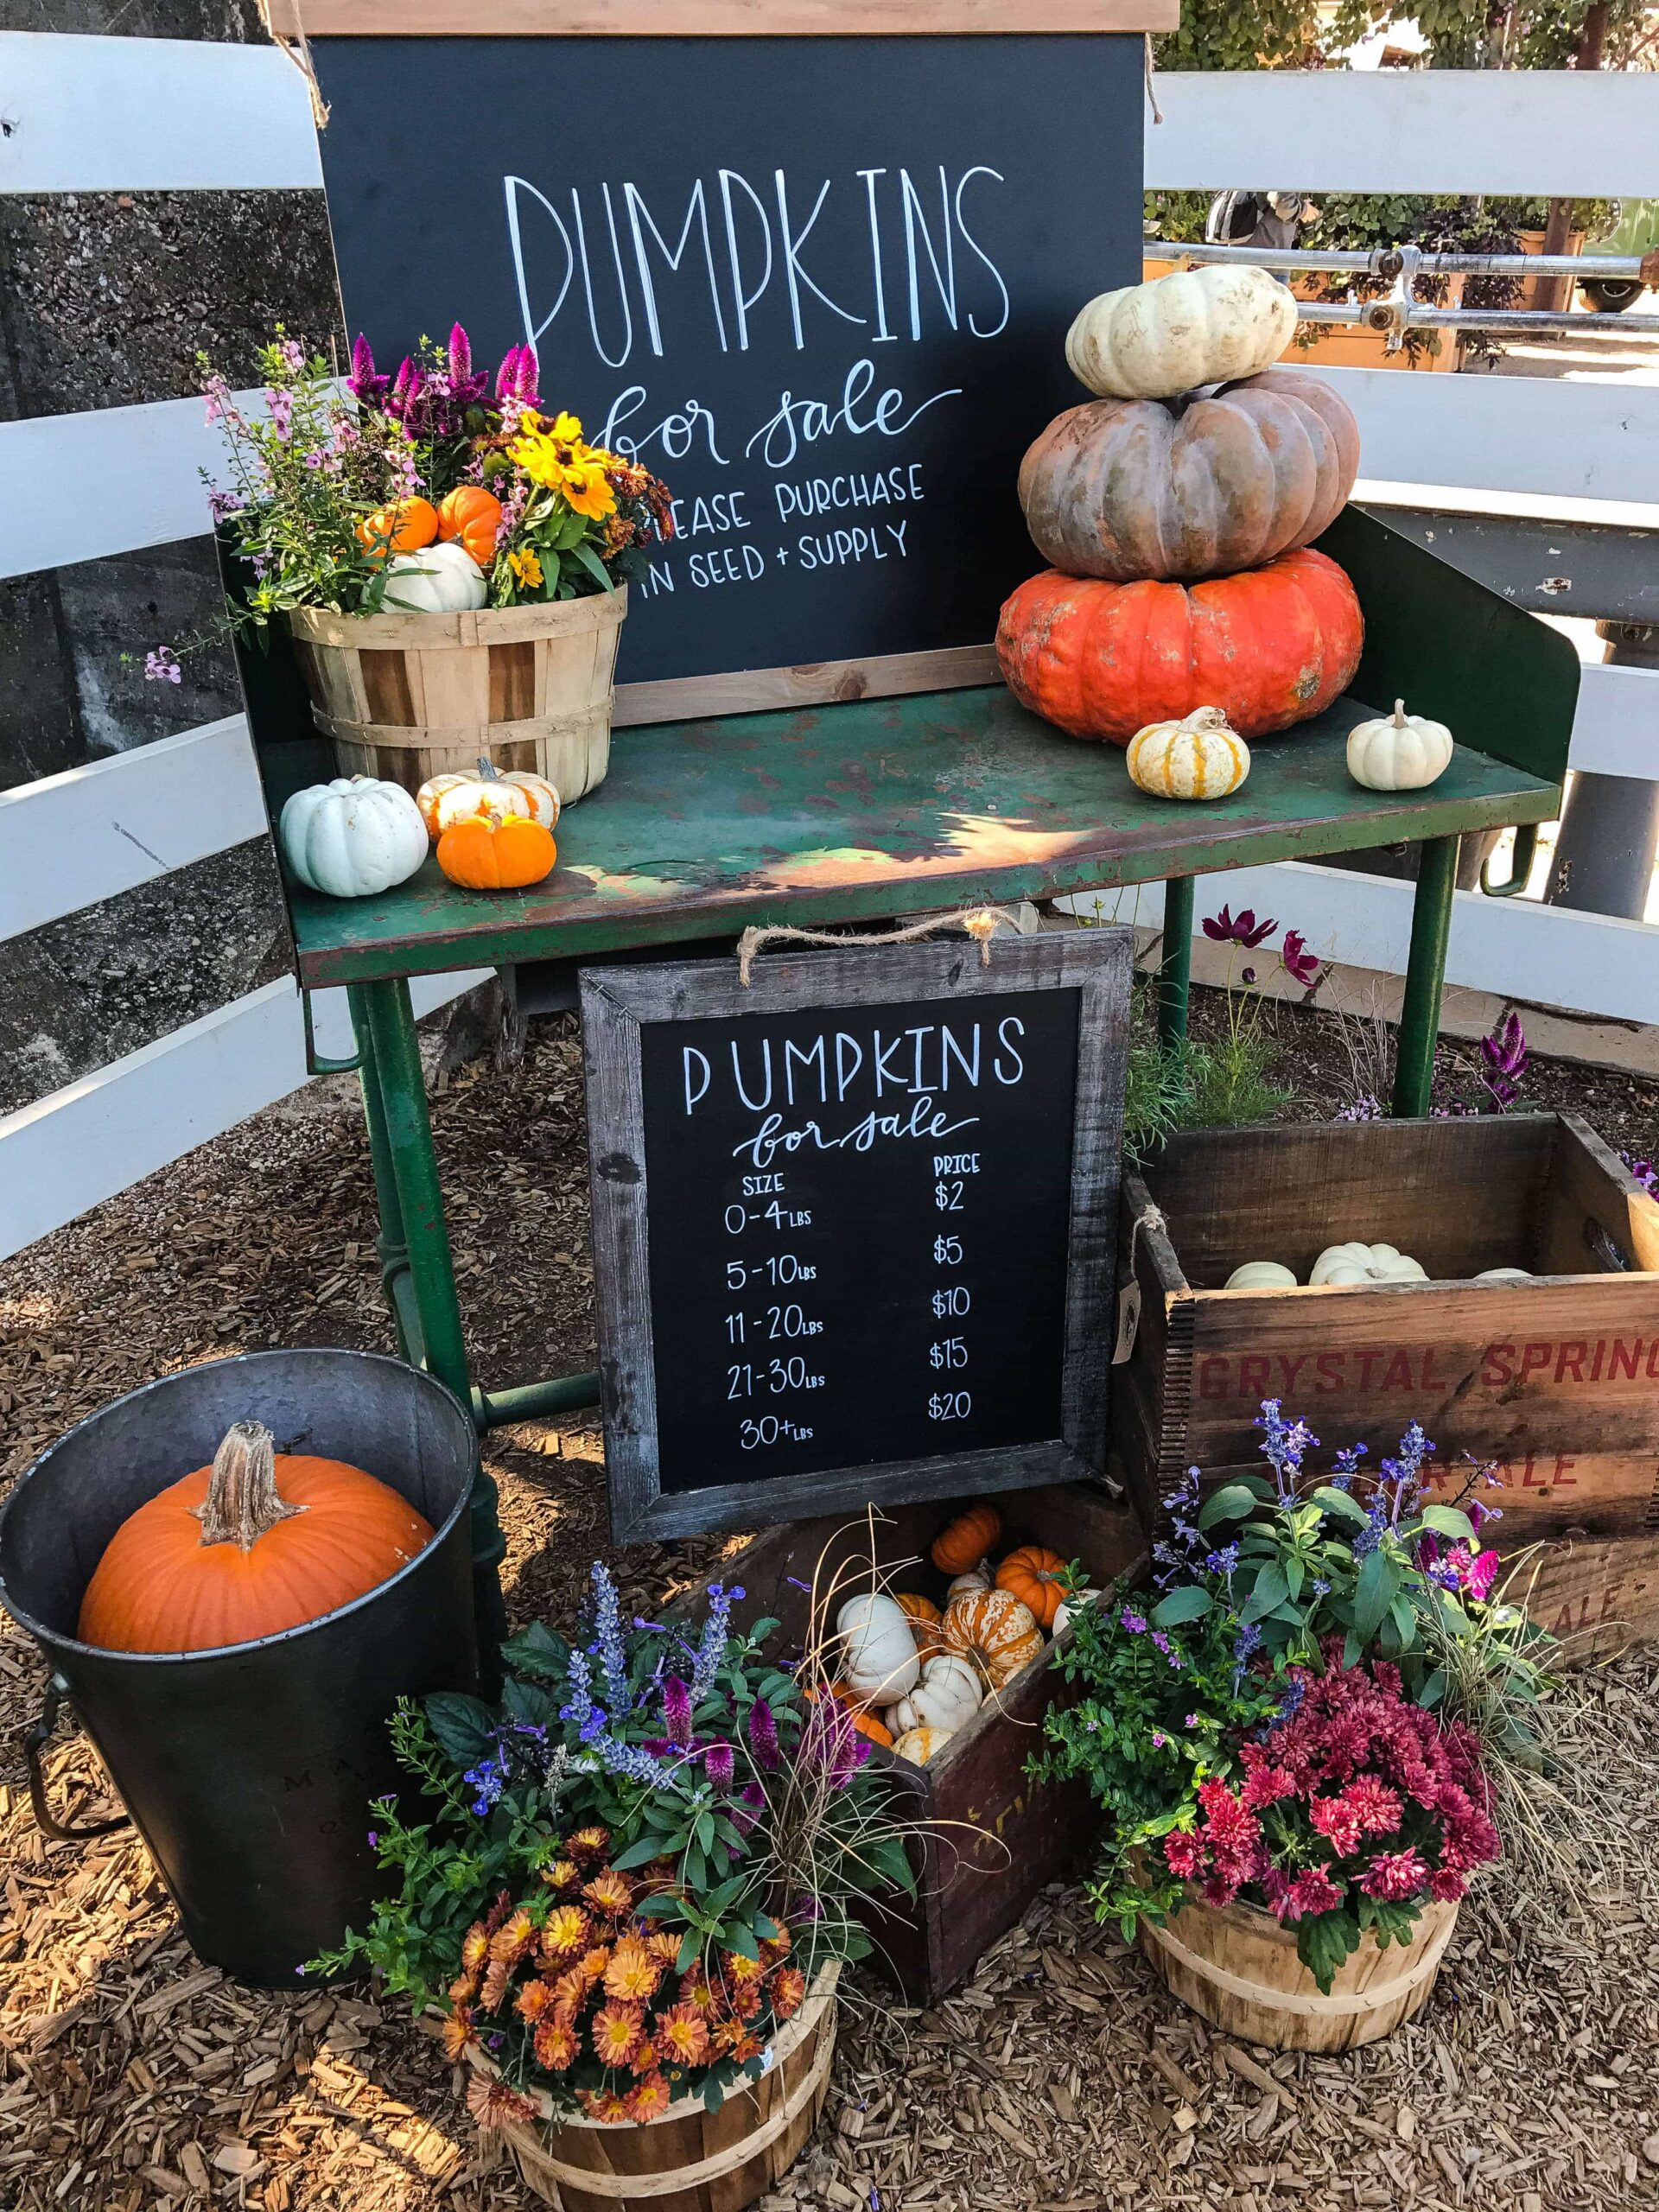 A Pumpkin Stand with Signs Indicating that the Pumpkins are For Sale